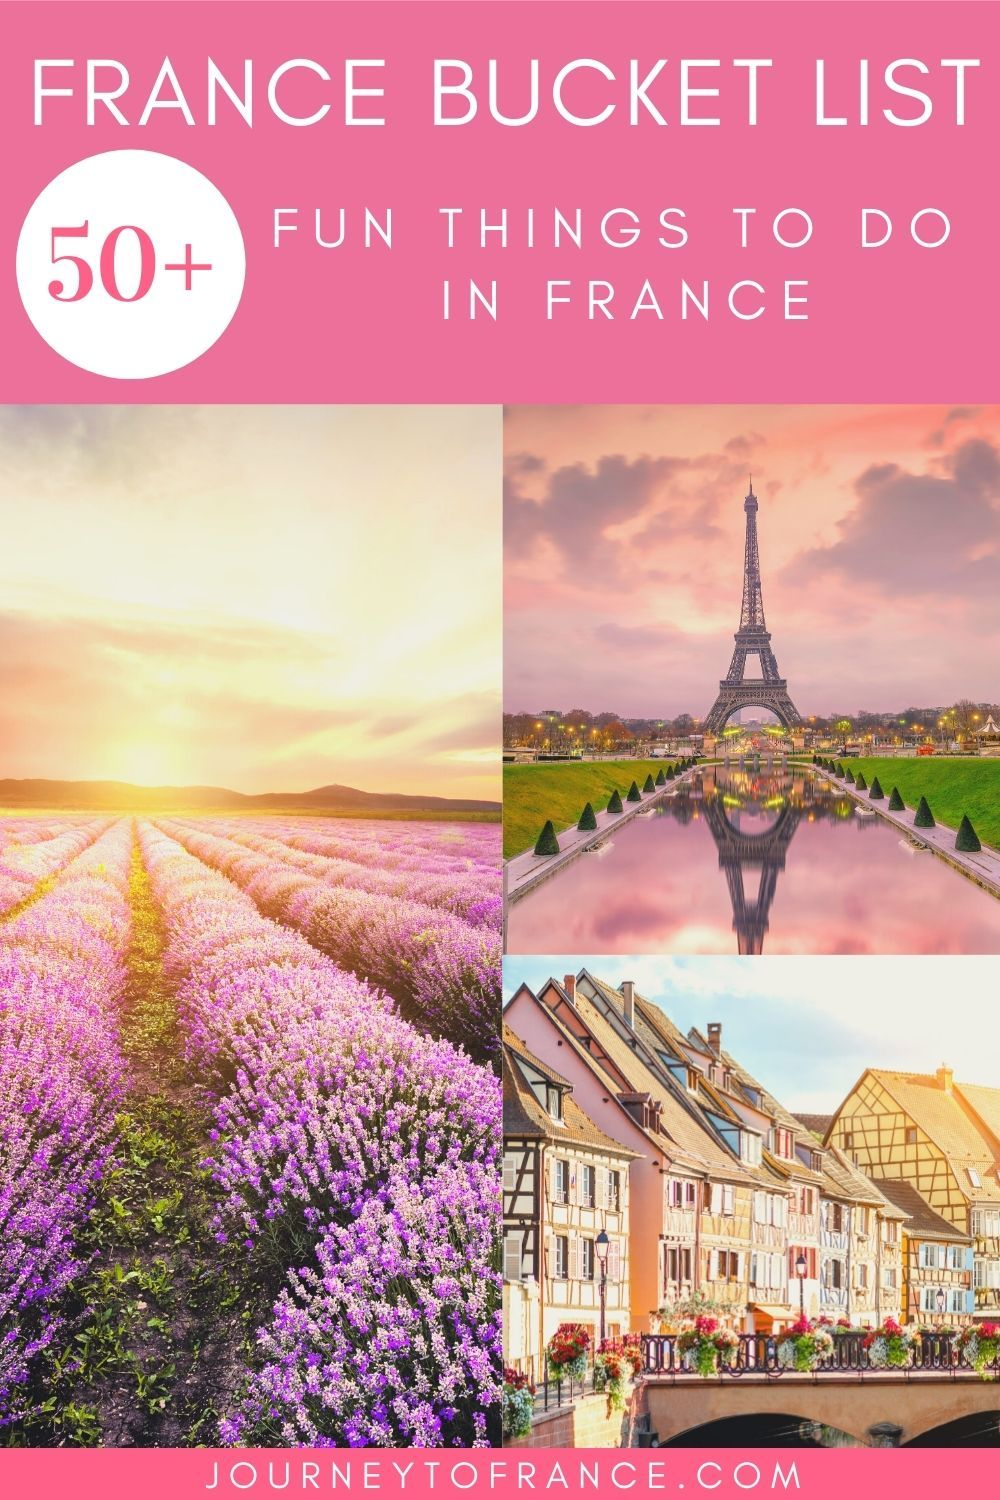 France Bucket List 50 Things To Do In France In 2020 France Travel France Travel Guide Europe Travel Destinations